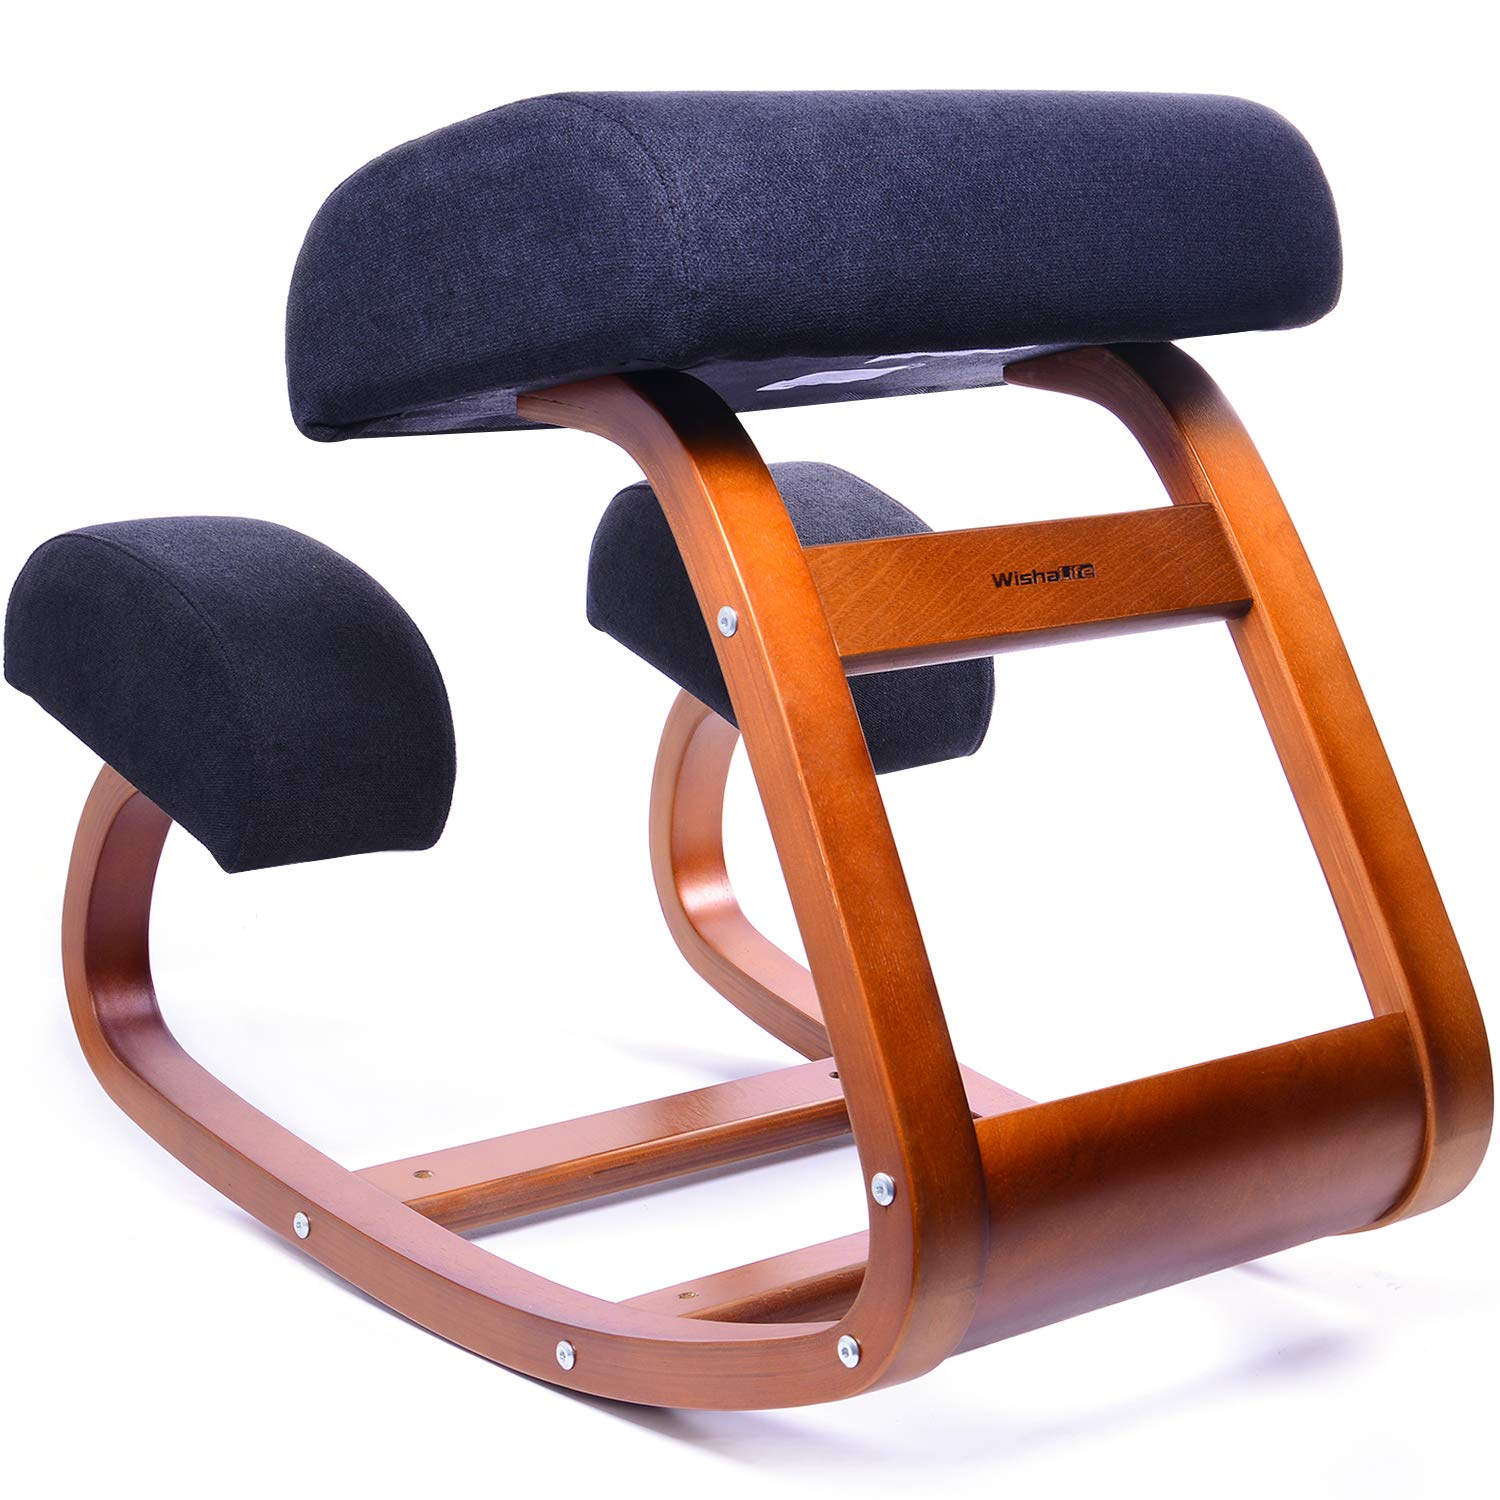 Ergonomic Office Chair, WishaLife Kneeling Chair Rocking Posture Wood Stool for Home Office & Desk Chair |Orthopedic Stool Relieving Back and Neck Pain & Improving Posture | Larger Seat,Thick Cushions by WishaLife